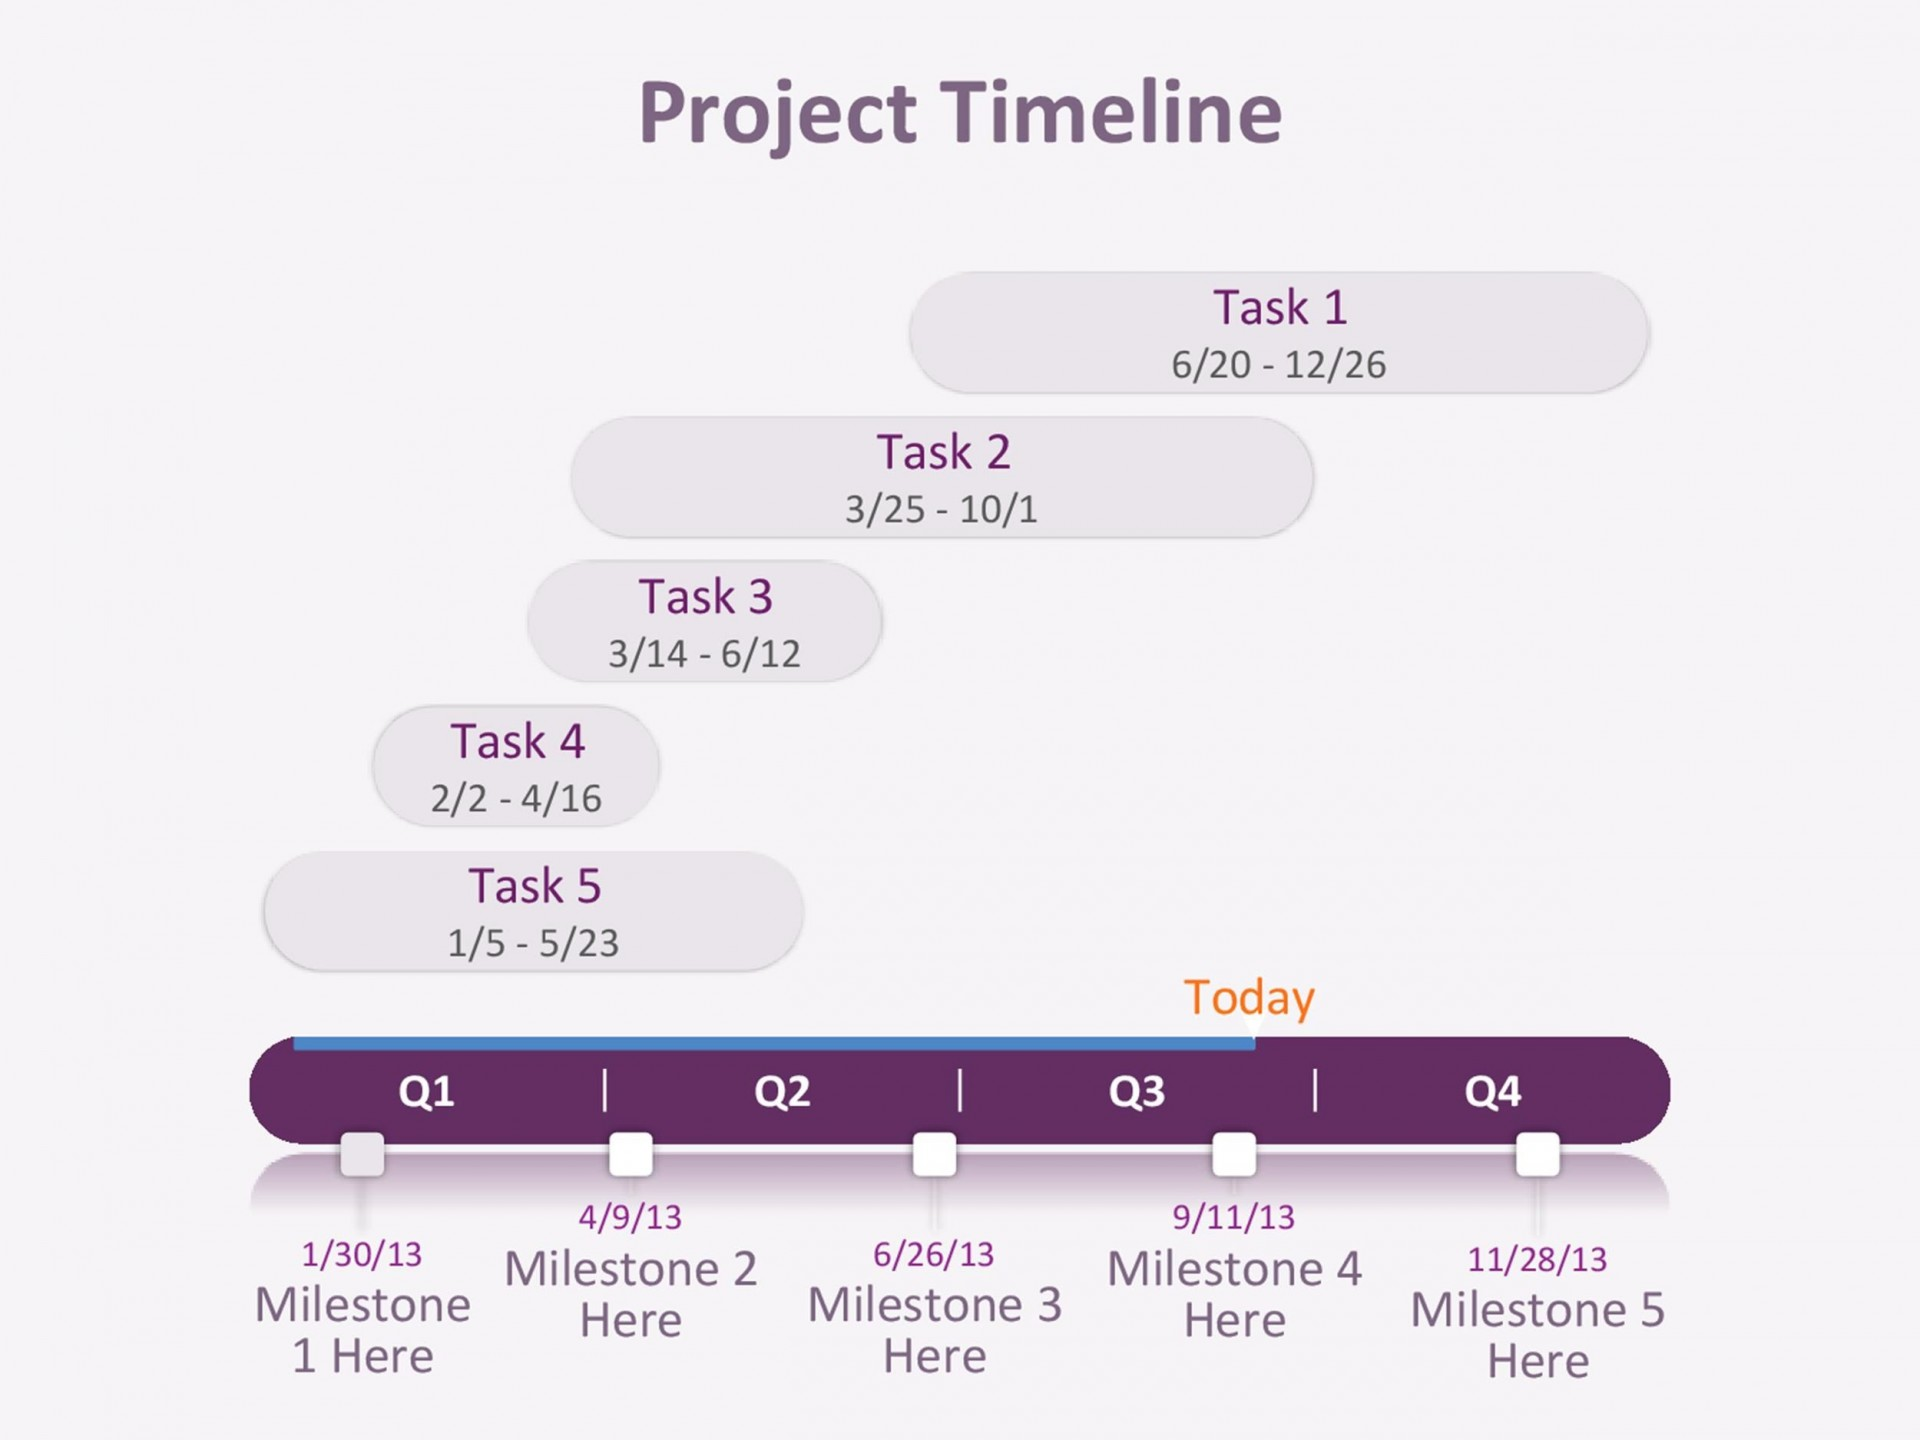 008 Fascinating Timeline Template In Word Picture  2010 Wordpres Free1920